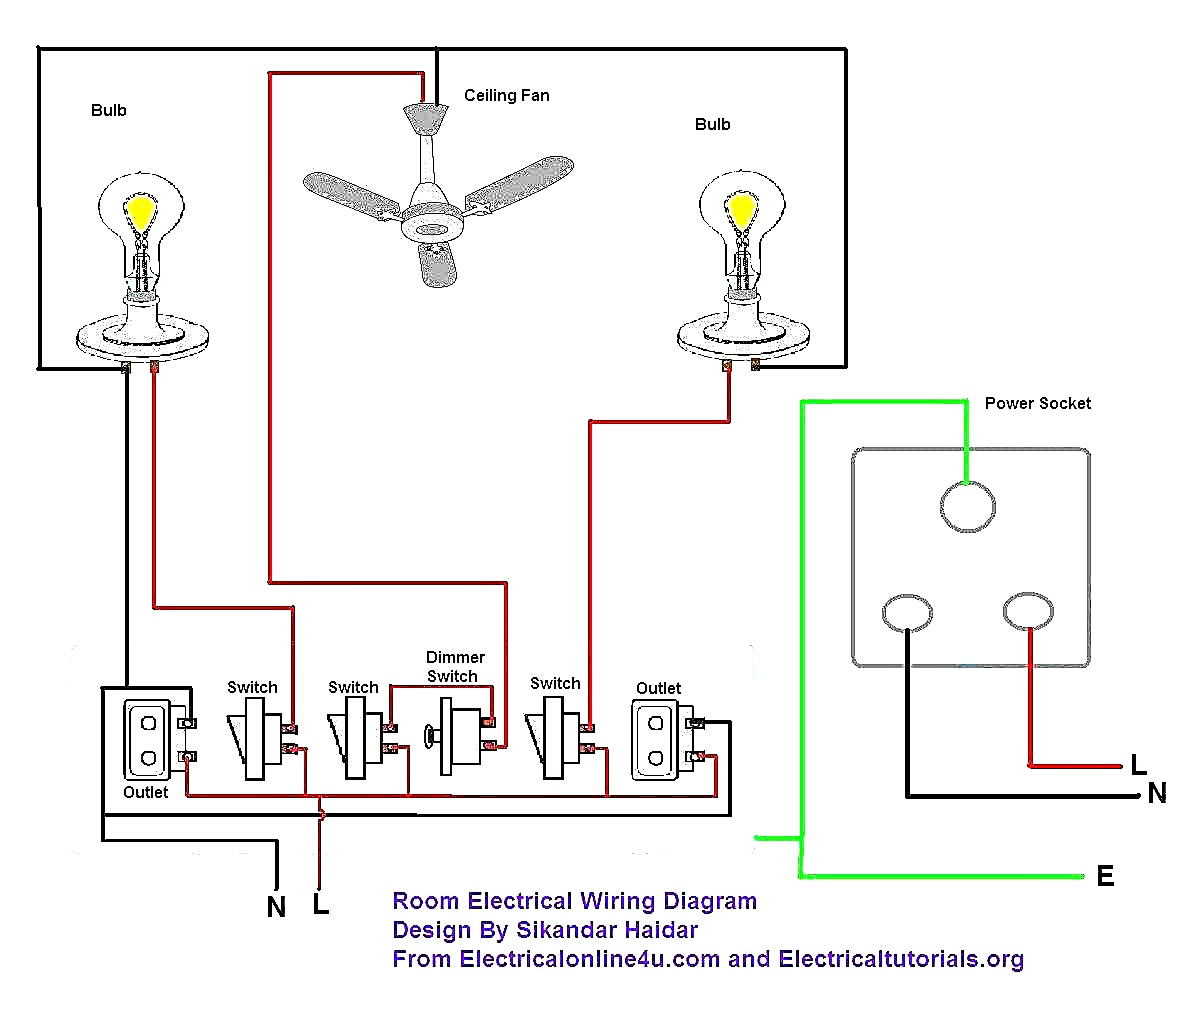 Basic Electrical Wiring For Dummies